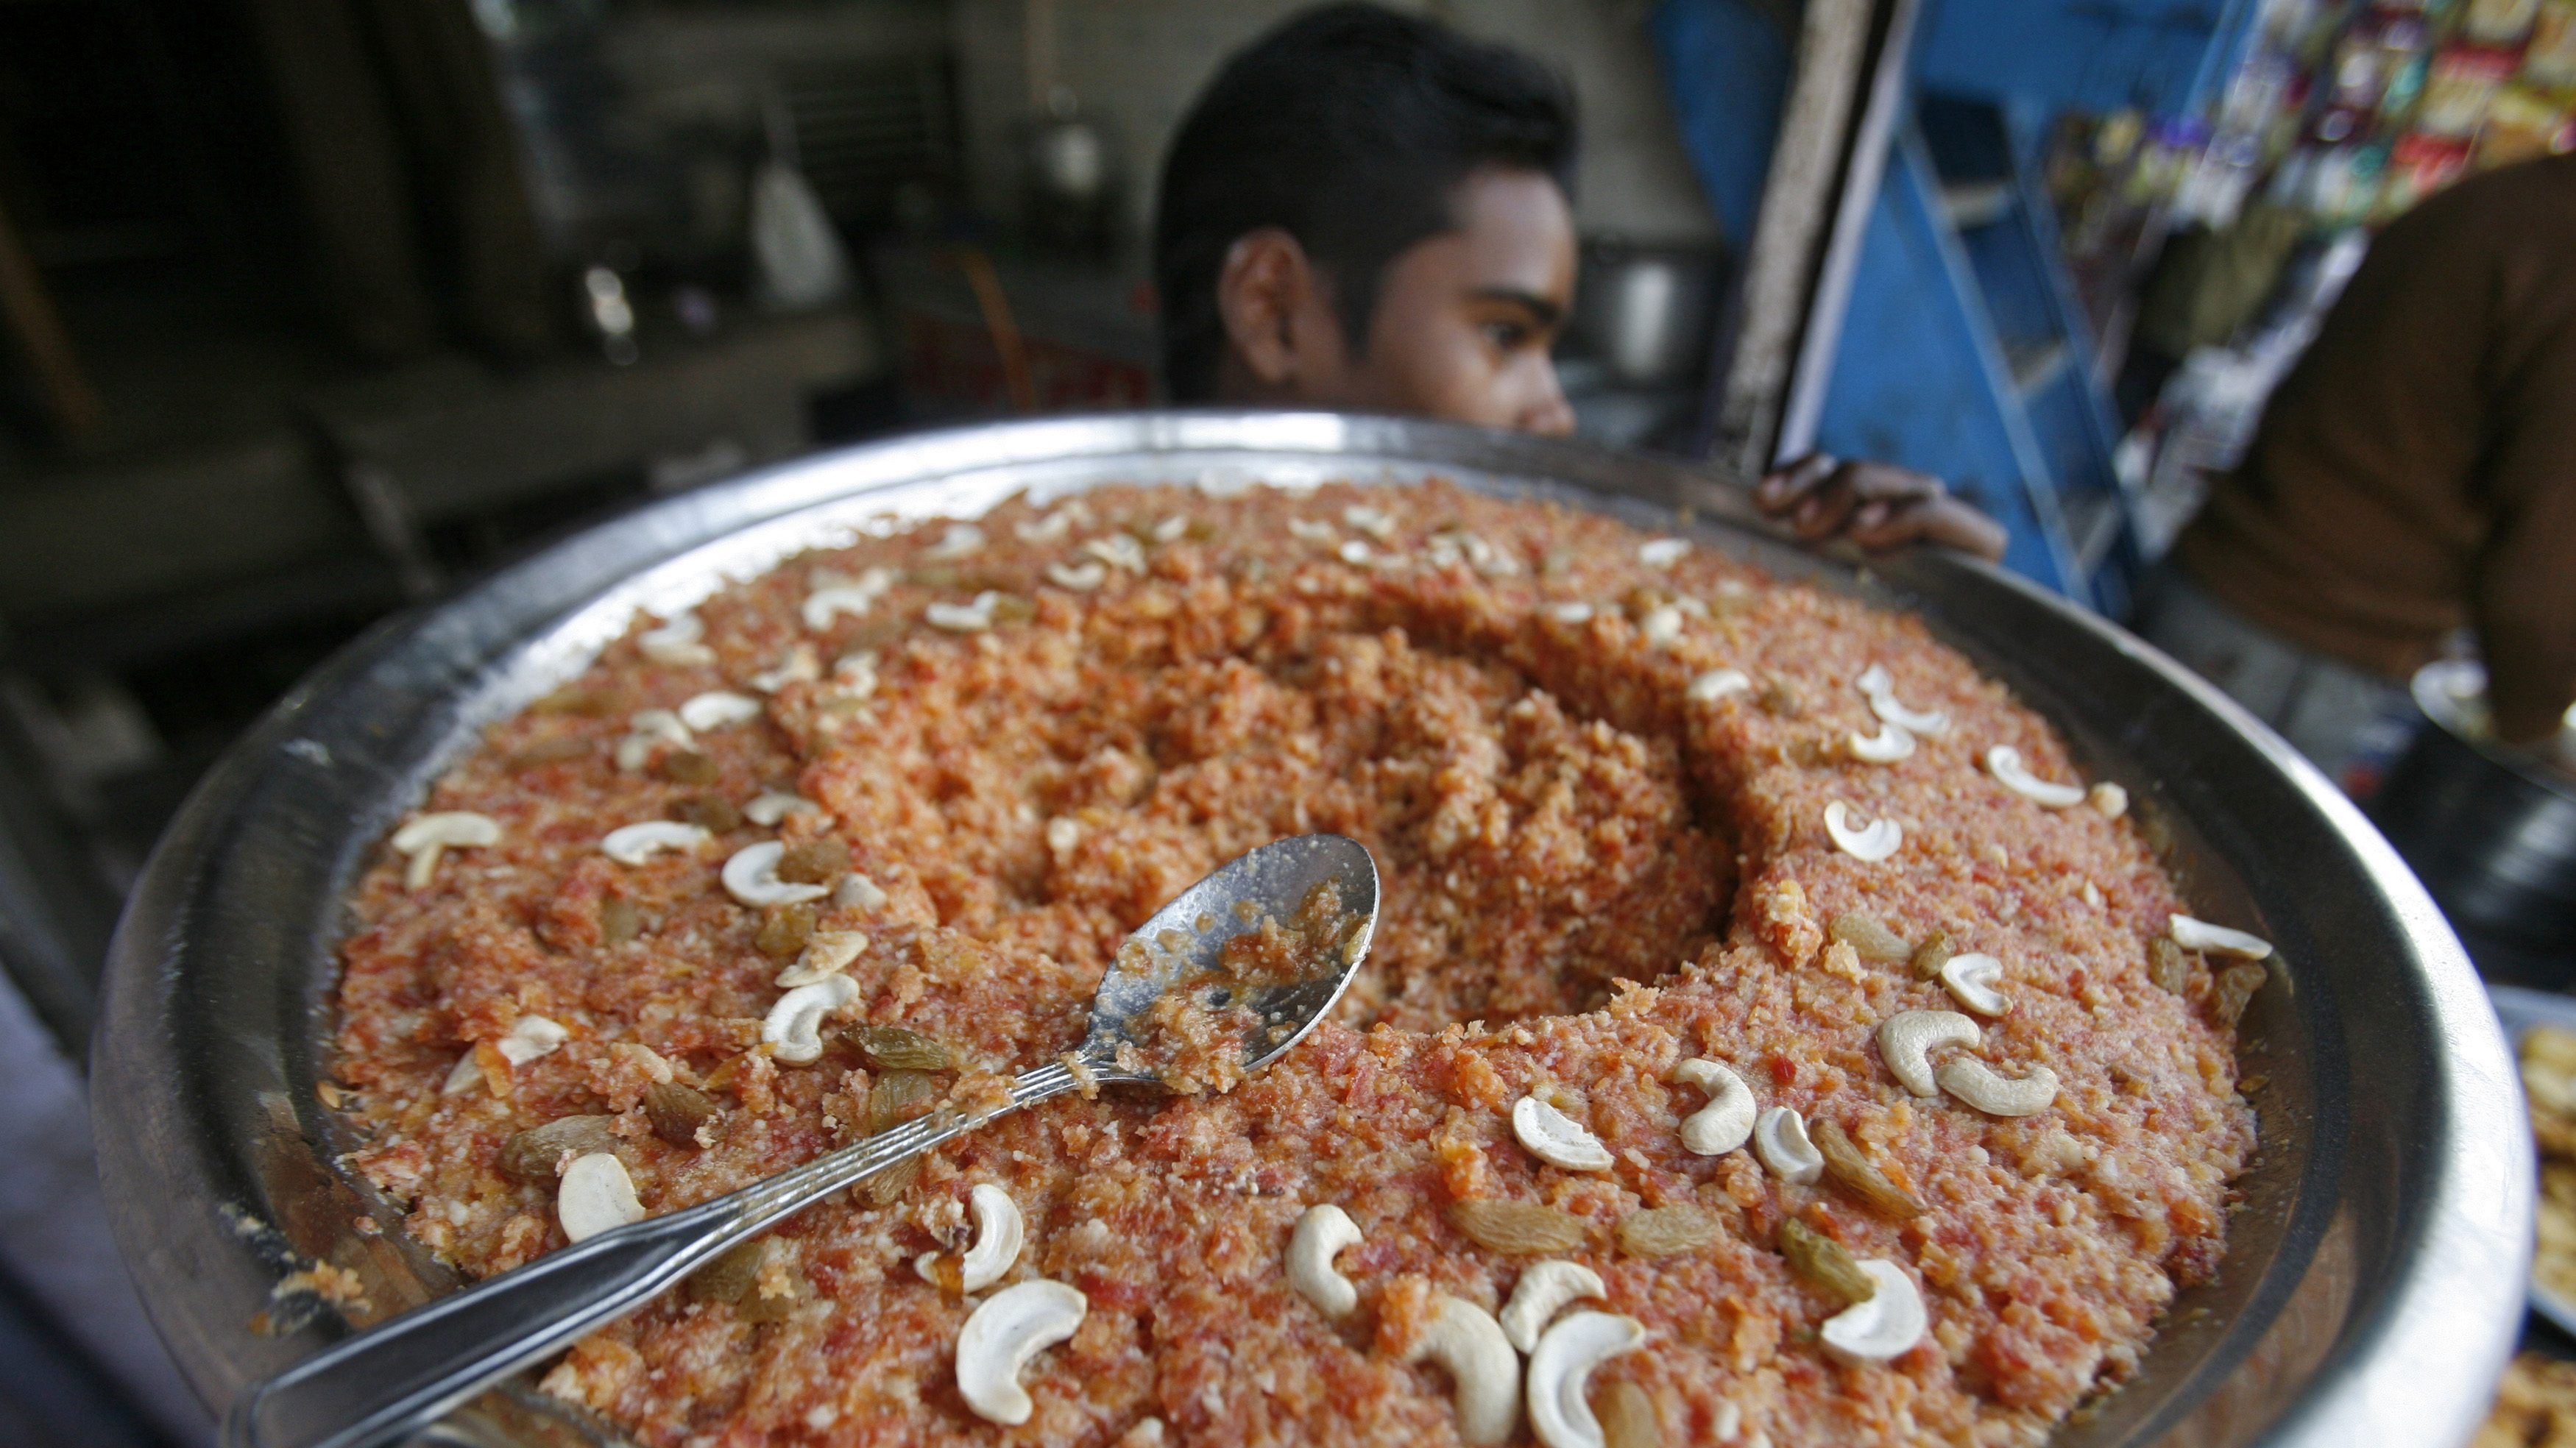 A worker carries gaajar ka halwa, a sweet dish made from carrots and milk, to a shop at Noida in the northern Indian state of Uttar Pradesh, December 23, 2010. India's food price index rose 12.13 percent in the year to December 11, government data on Thursday showed.